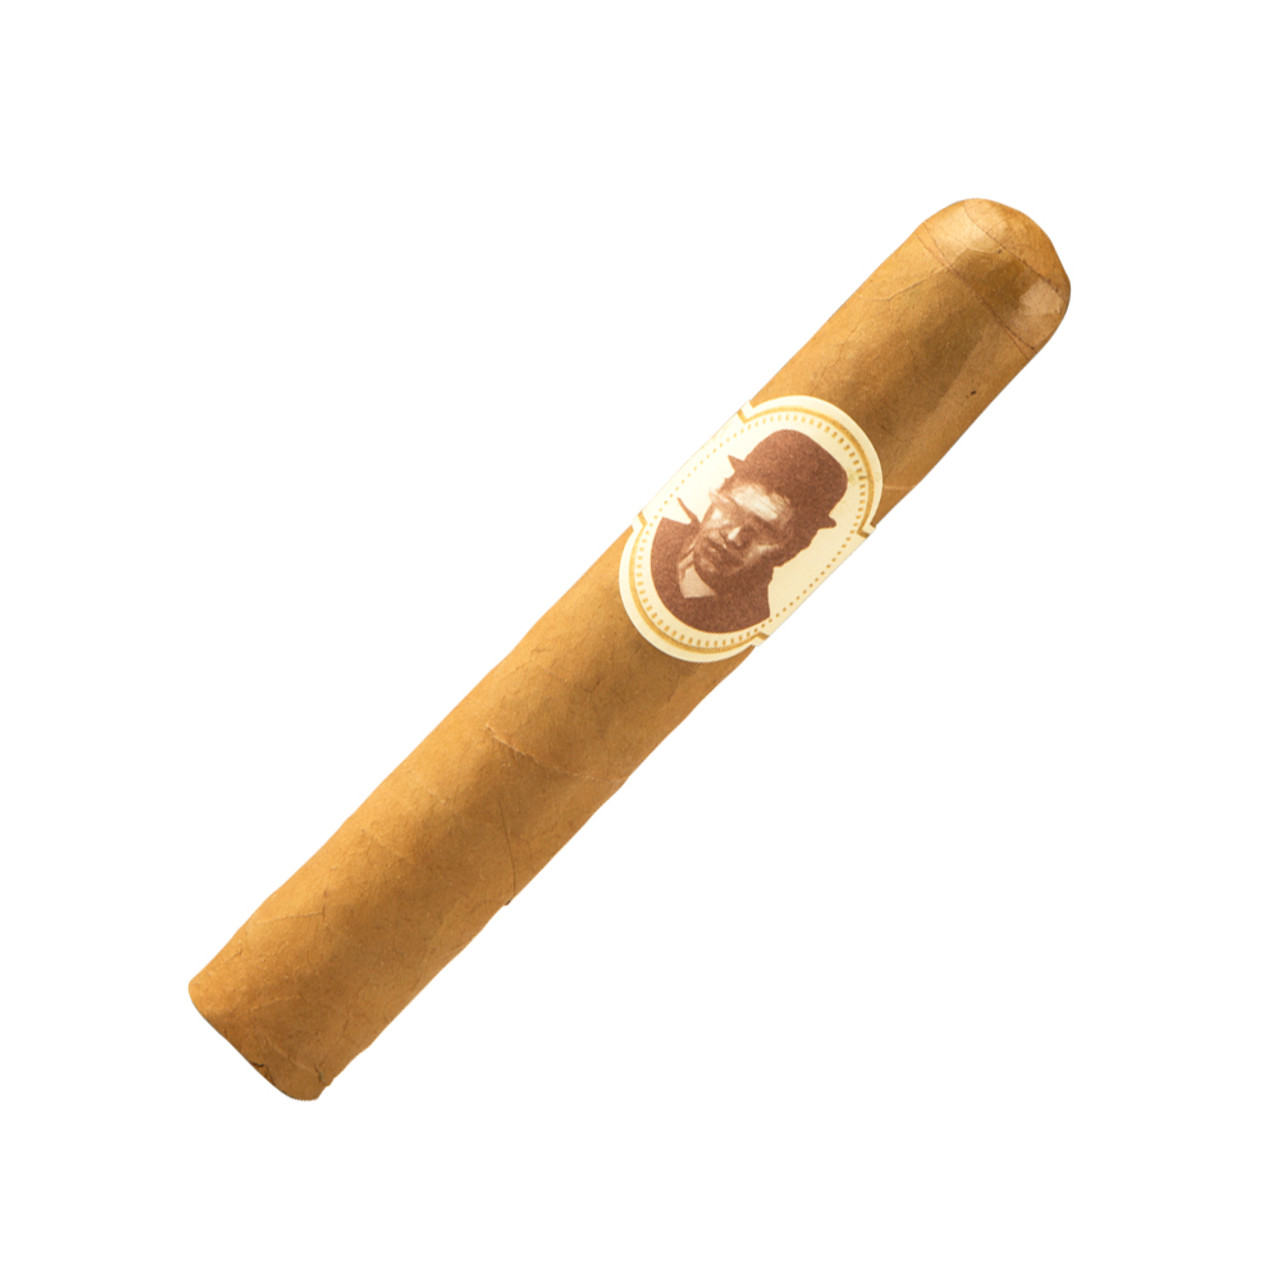 Blind Man's Bluff by Caldwell Cigar Co. Connecticut Robusto Cigars - 5 x 50 (Box of 20)